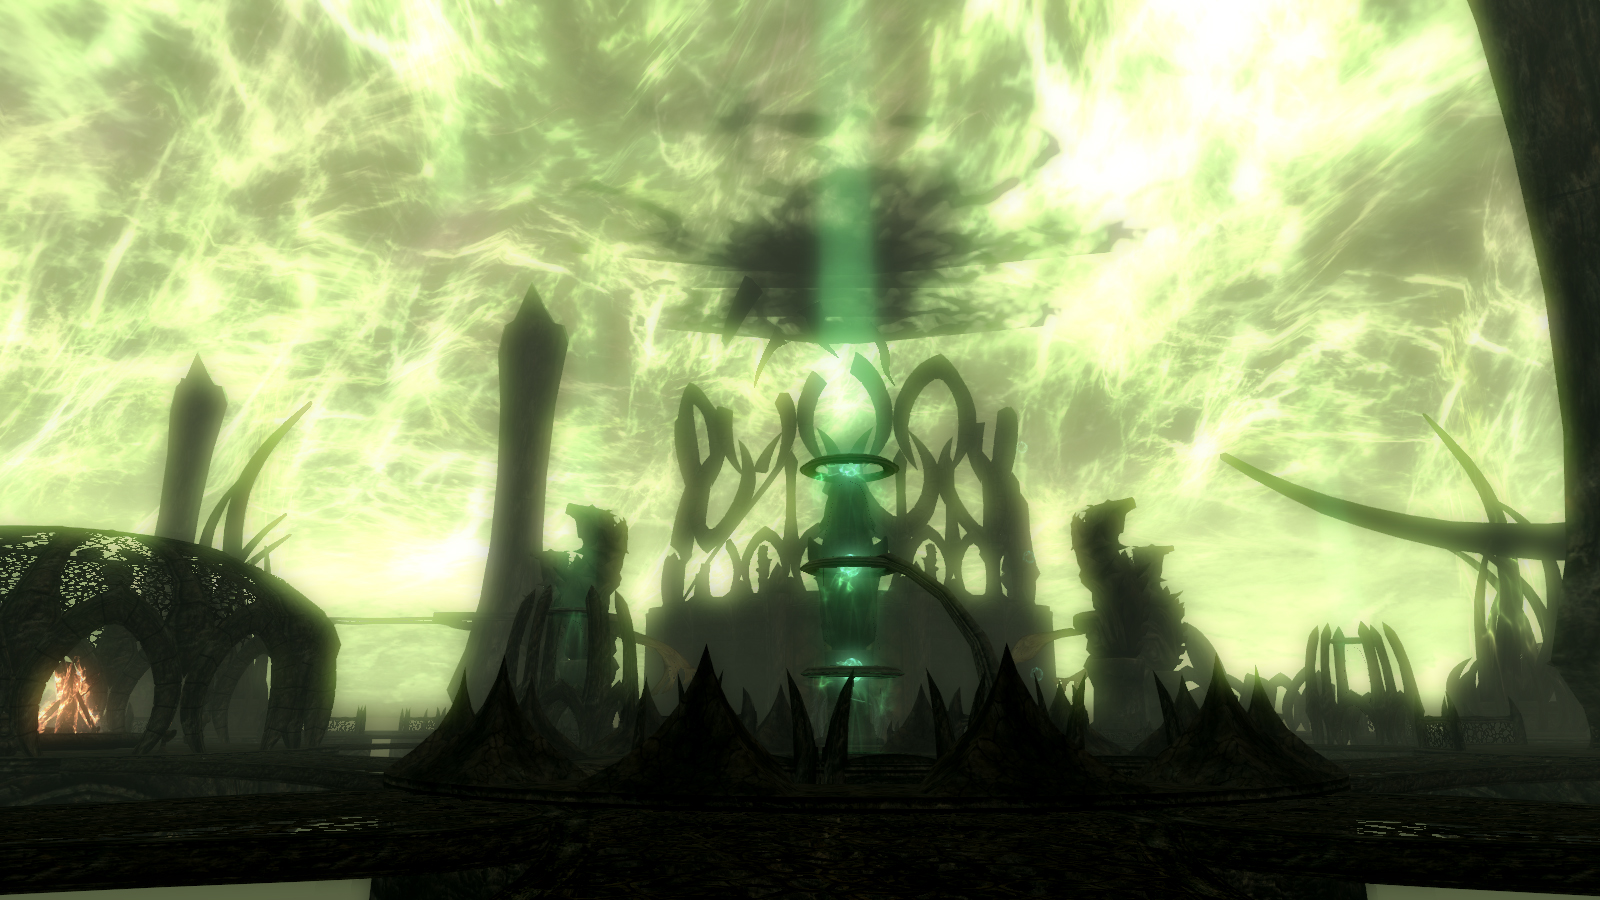 The Dragonborn takes on Cthulhu in this sprawling Skyrim mod